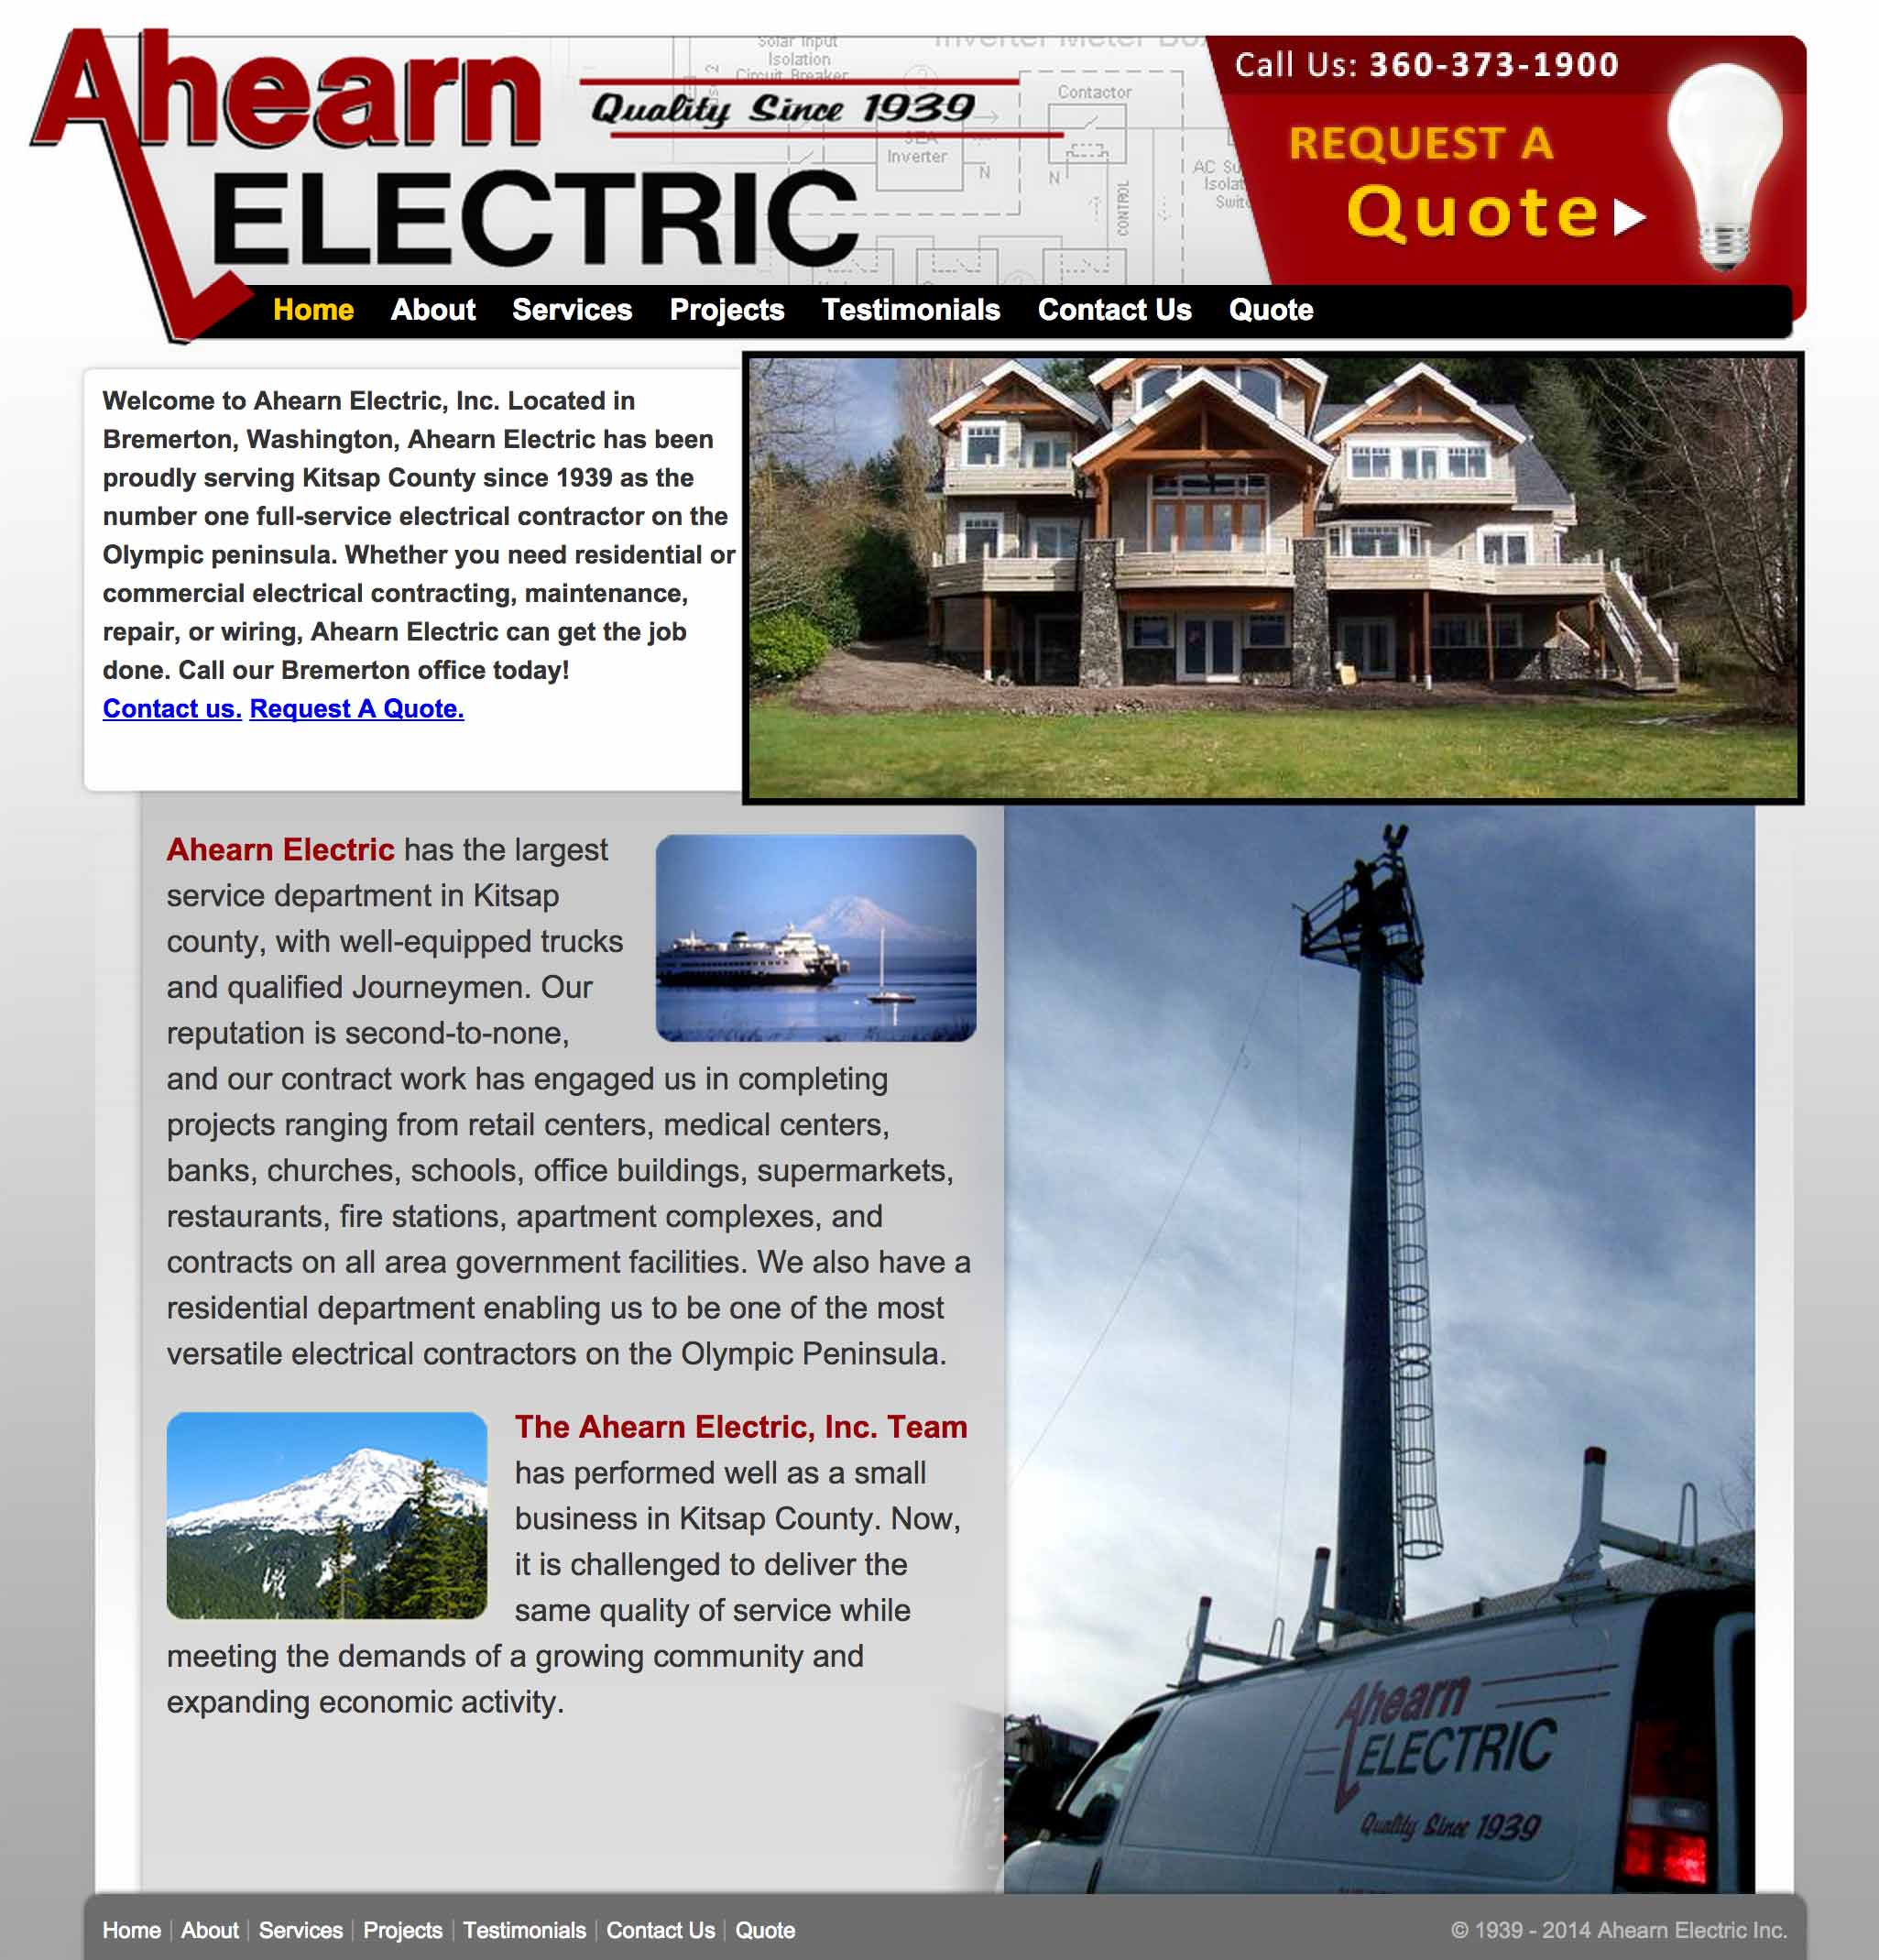 Screen shot of the Ahearn Electric web site by Lee Powers.